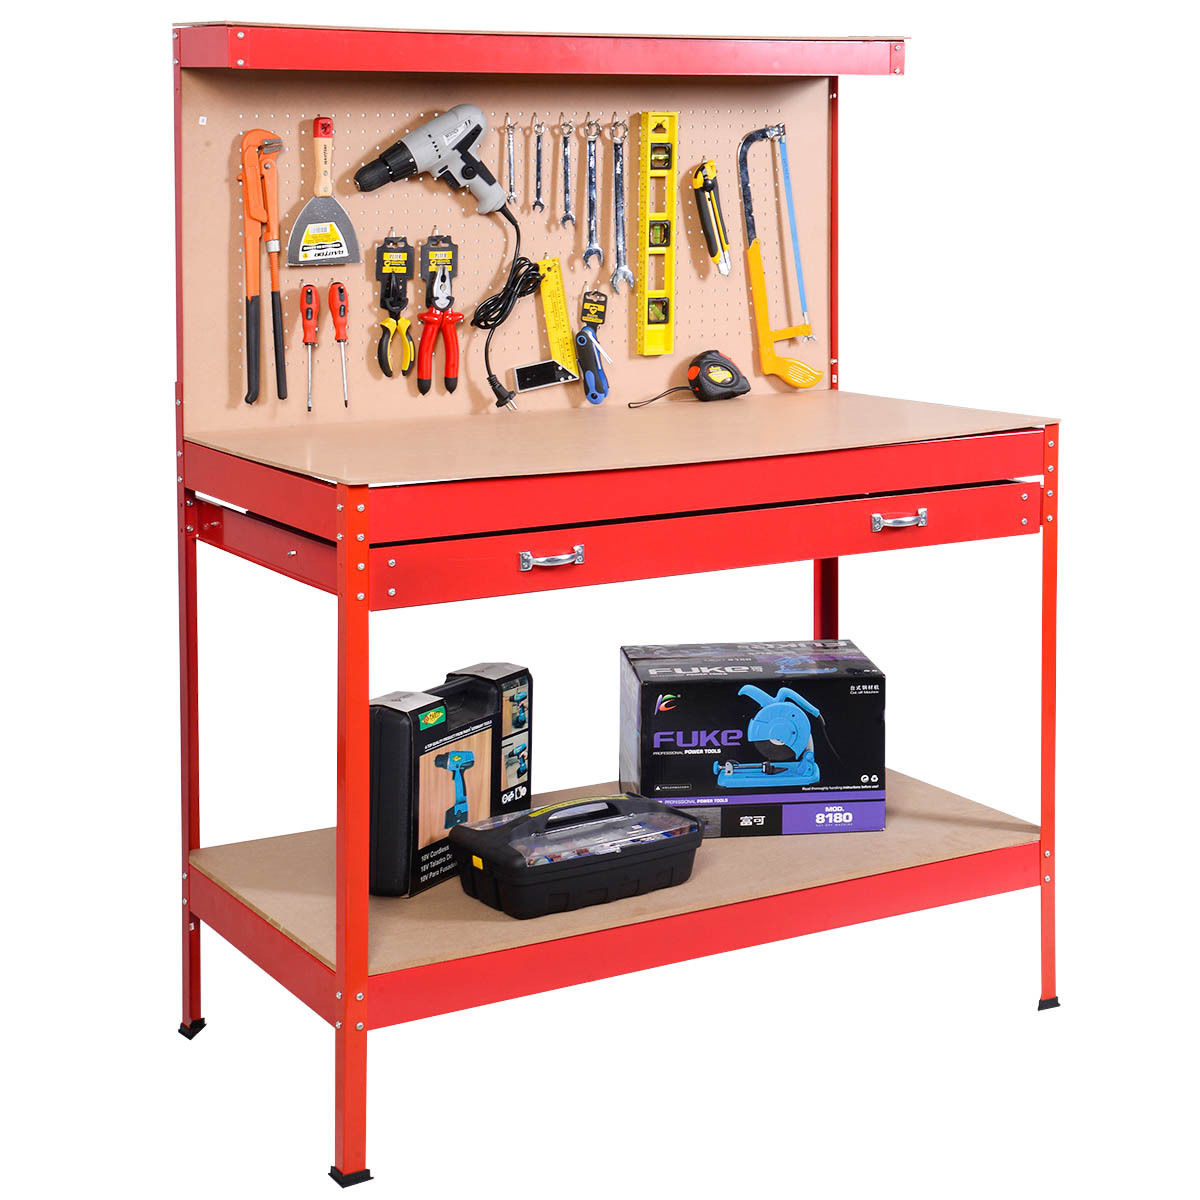 Costway Work Bench Tool Storage Steel Tool Workshop Table W/ Drawer and Peg Board Red